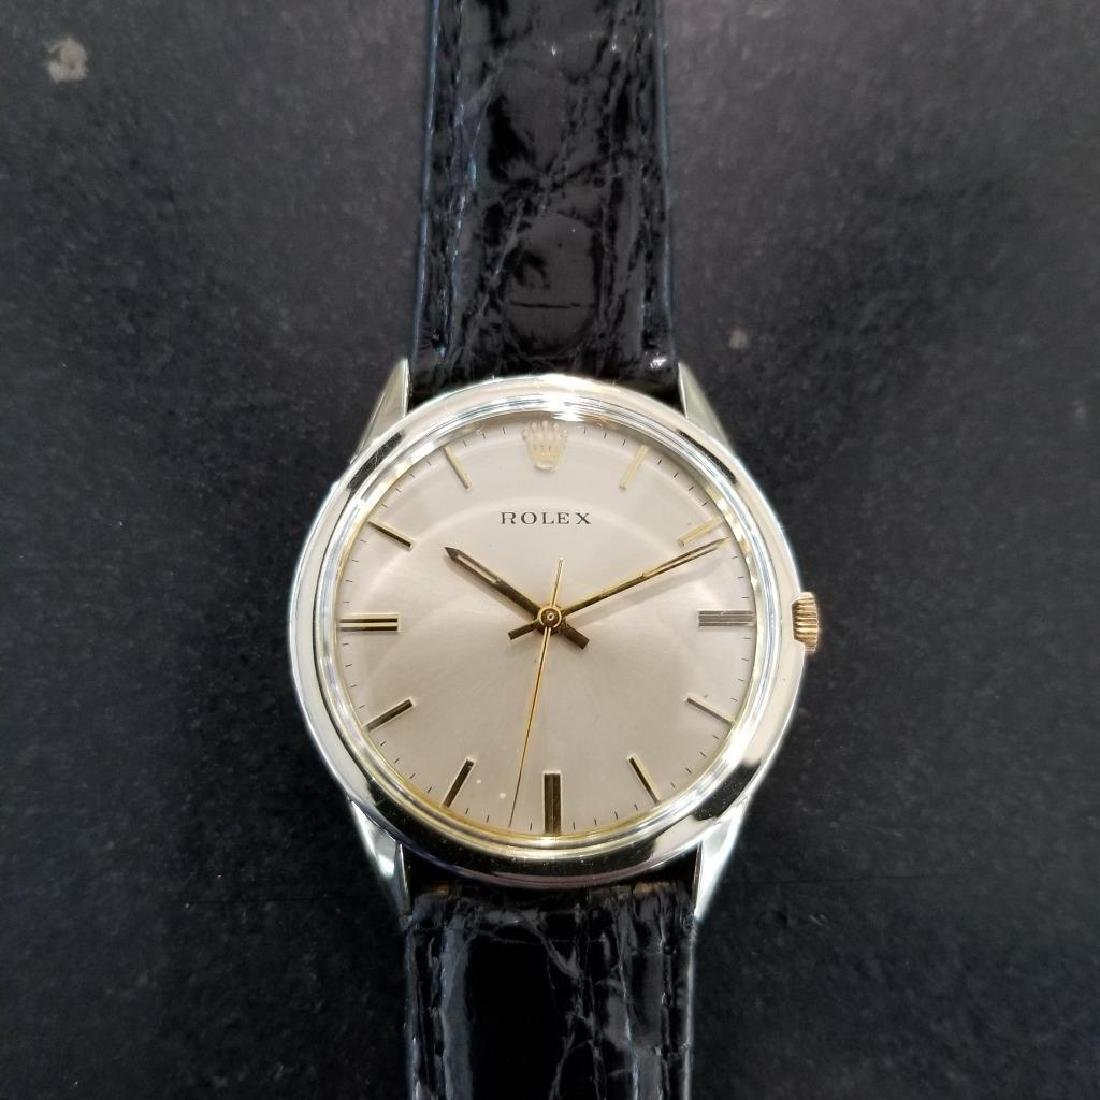 Rolex Vintage 1972 Automatic Rare 35mm 14k Gold Filled - 4